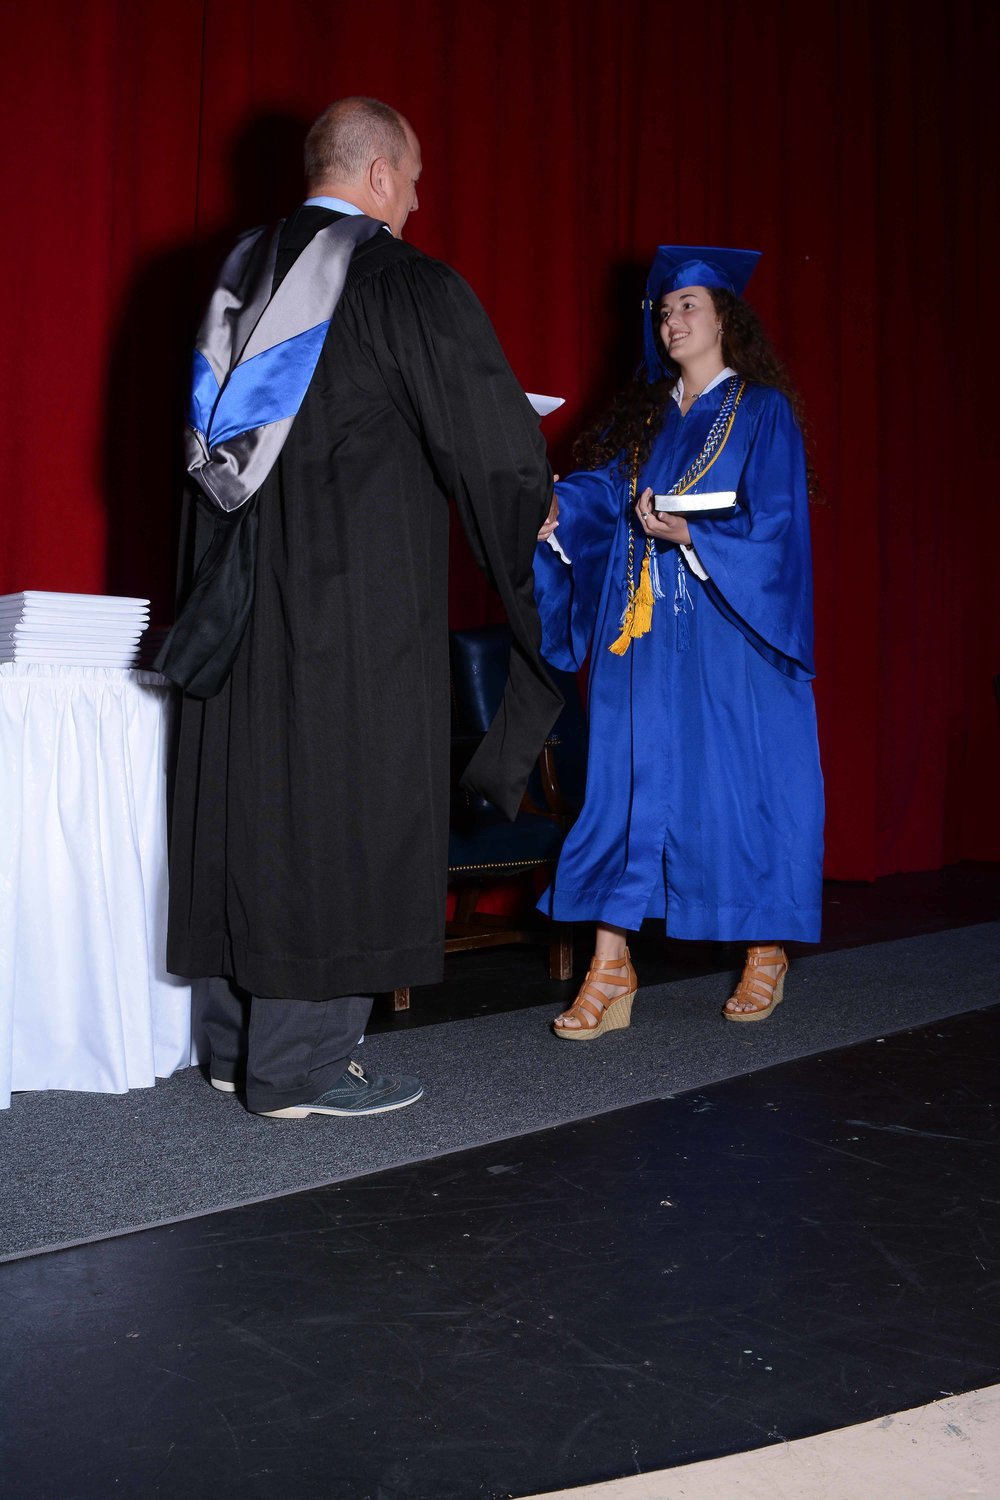 May14 Commencement96.jpg